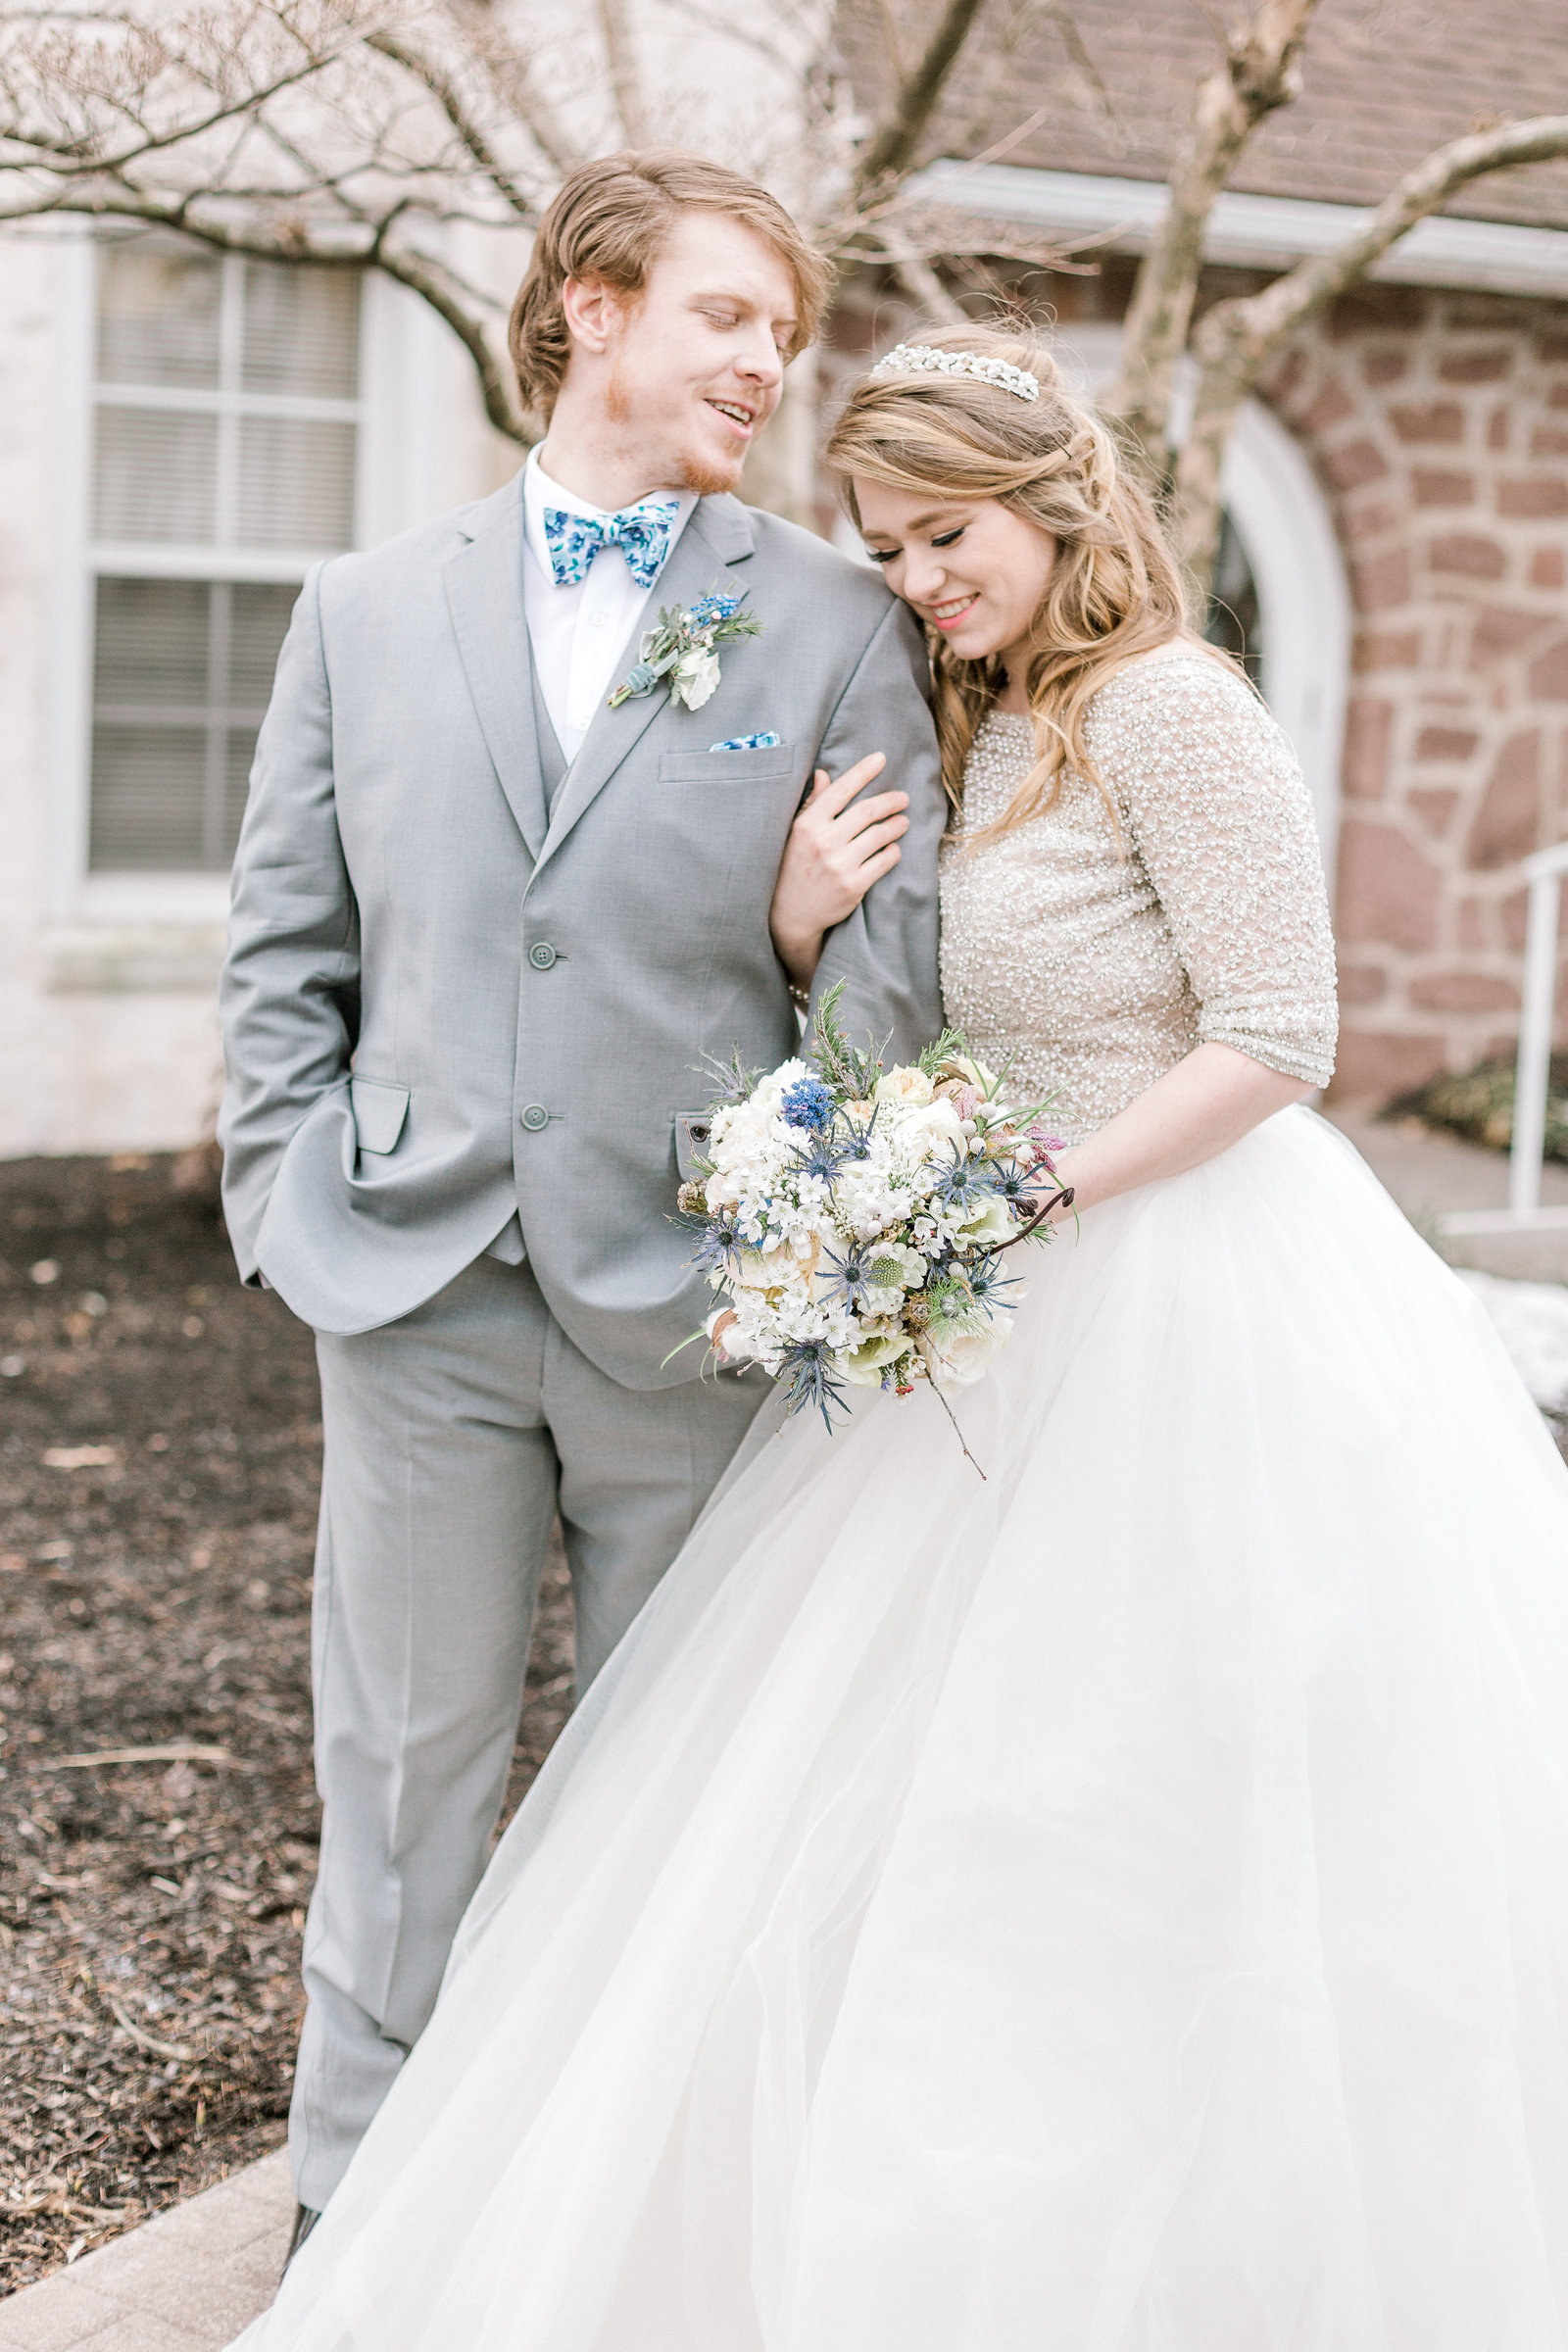 Dusty Blue Winter Wedding at Barn and Hill Reading PA Lehigh Valley wedding and lifestyle photographer Lytle Photo Co (171 of 218)